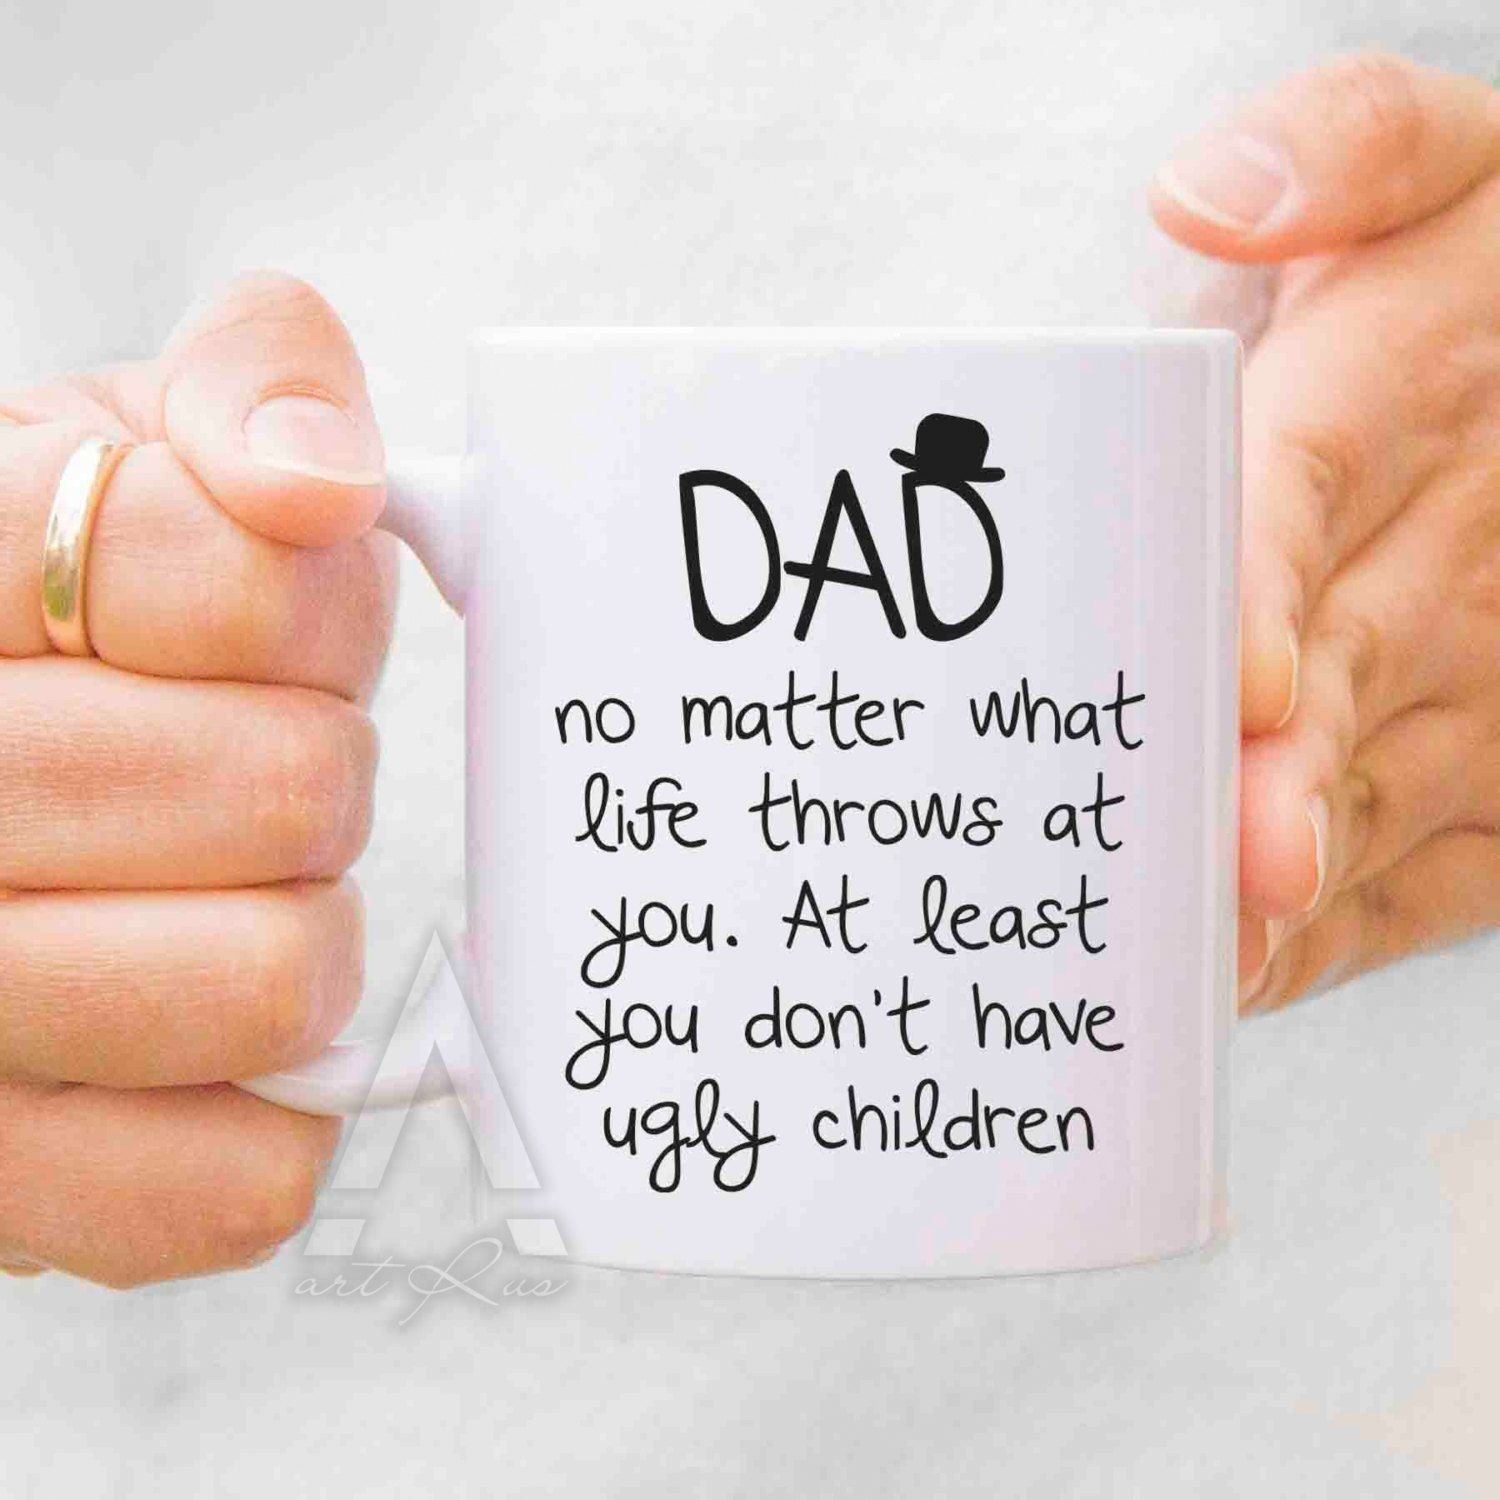 10 Lovely Gift Ideas For Dad From Daughter Birthday Fathers Day